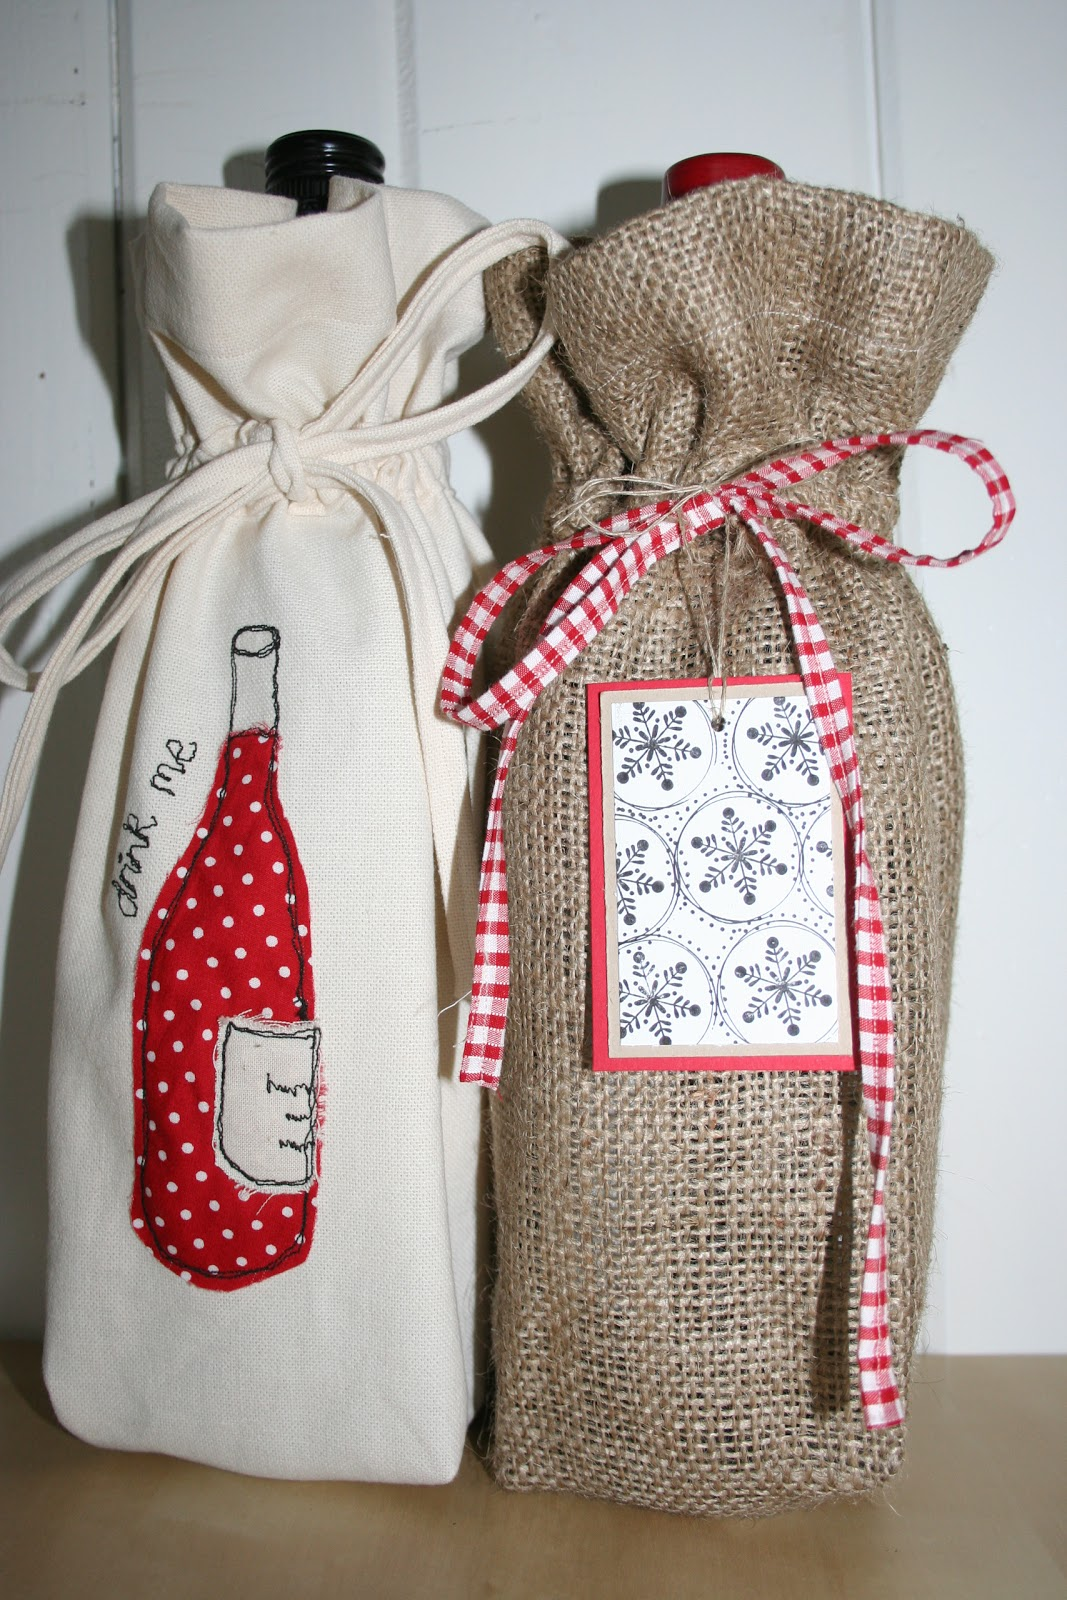 These Bags Have Been Made With A Definite Festive Feeling However You Could Adapt To Suit Any Occasion Depending On The Fabrics And Embellishments